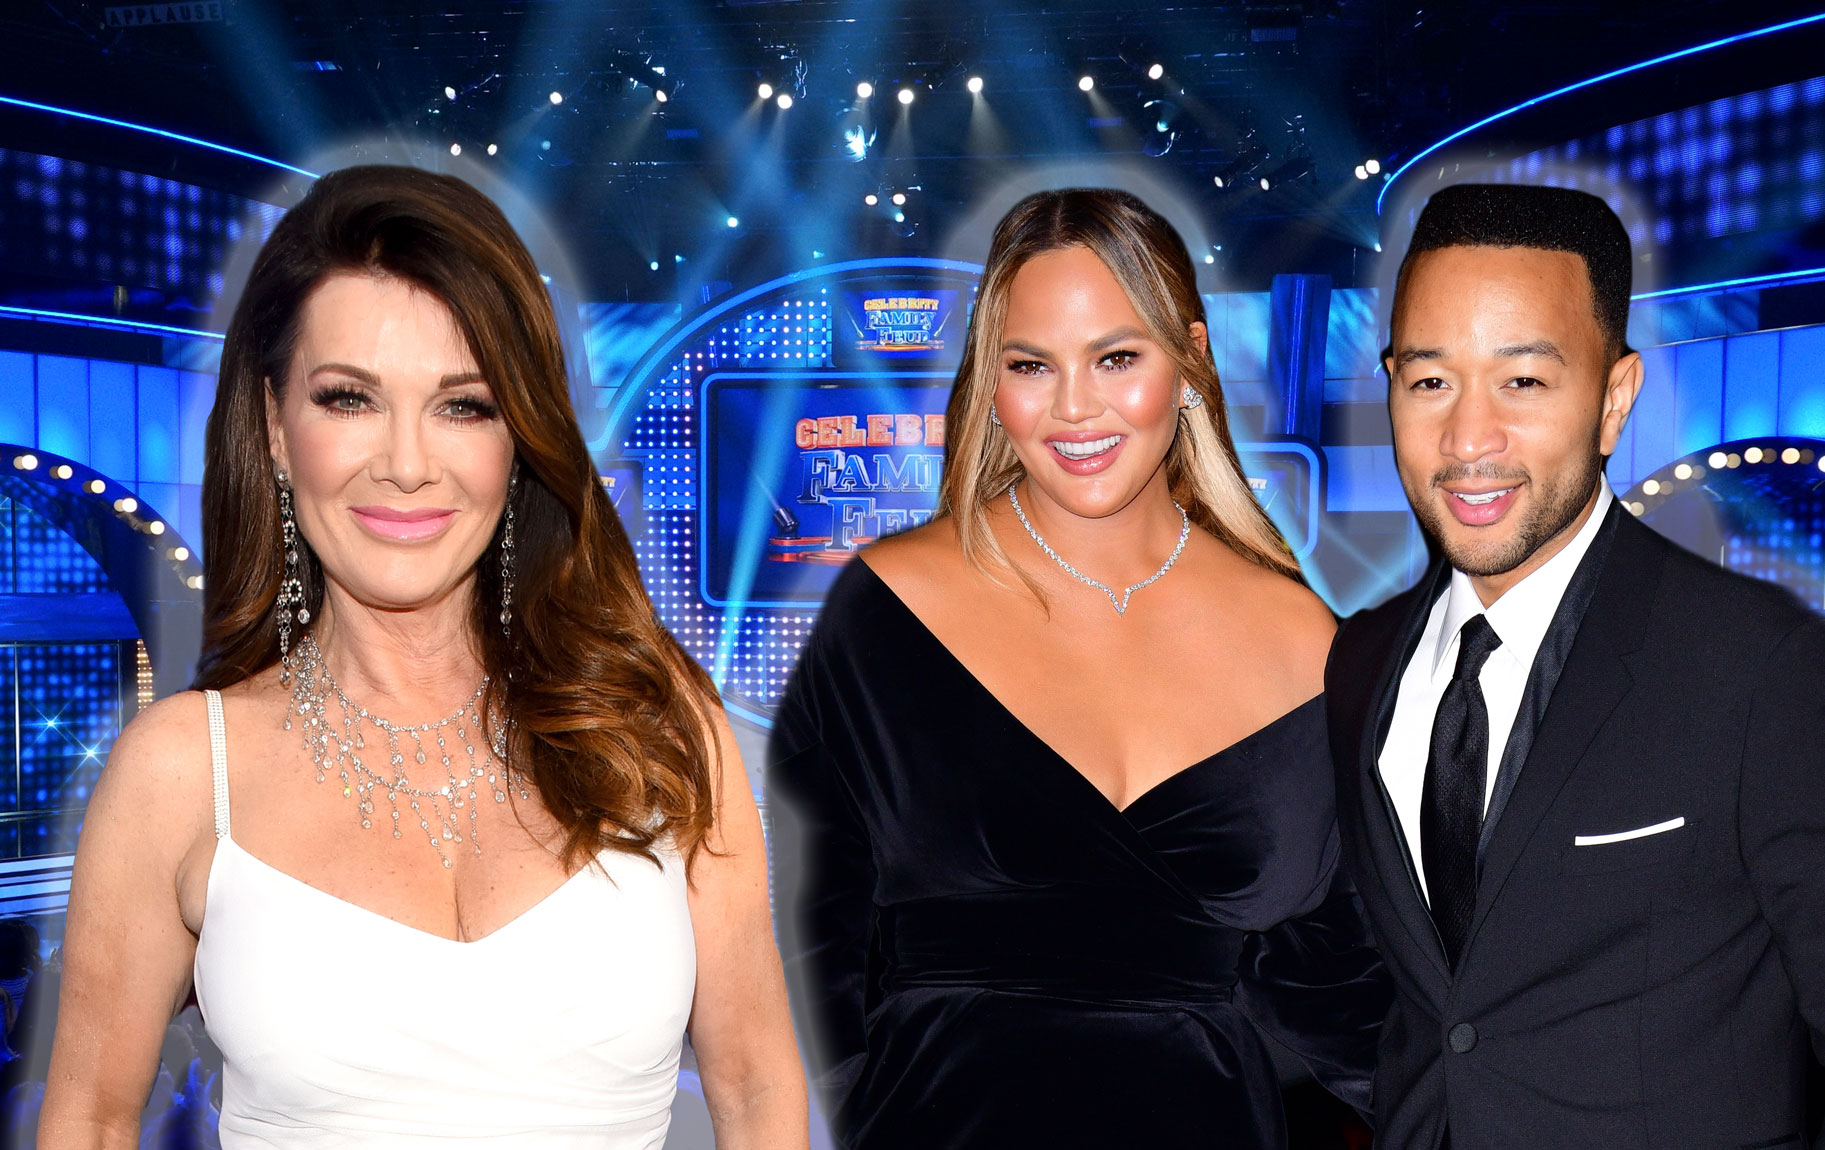 dish-vanderpump-rules-chrissy-teigen-family-feud.jpg